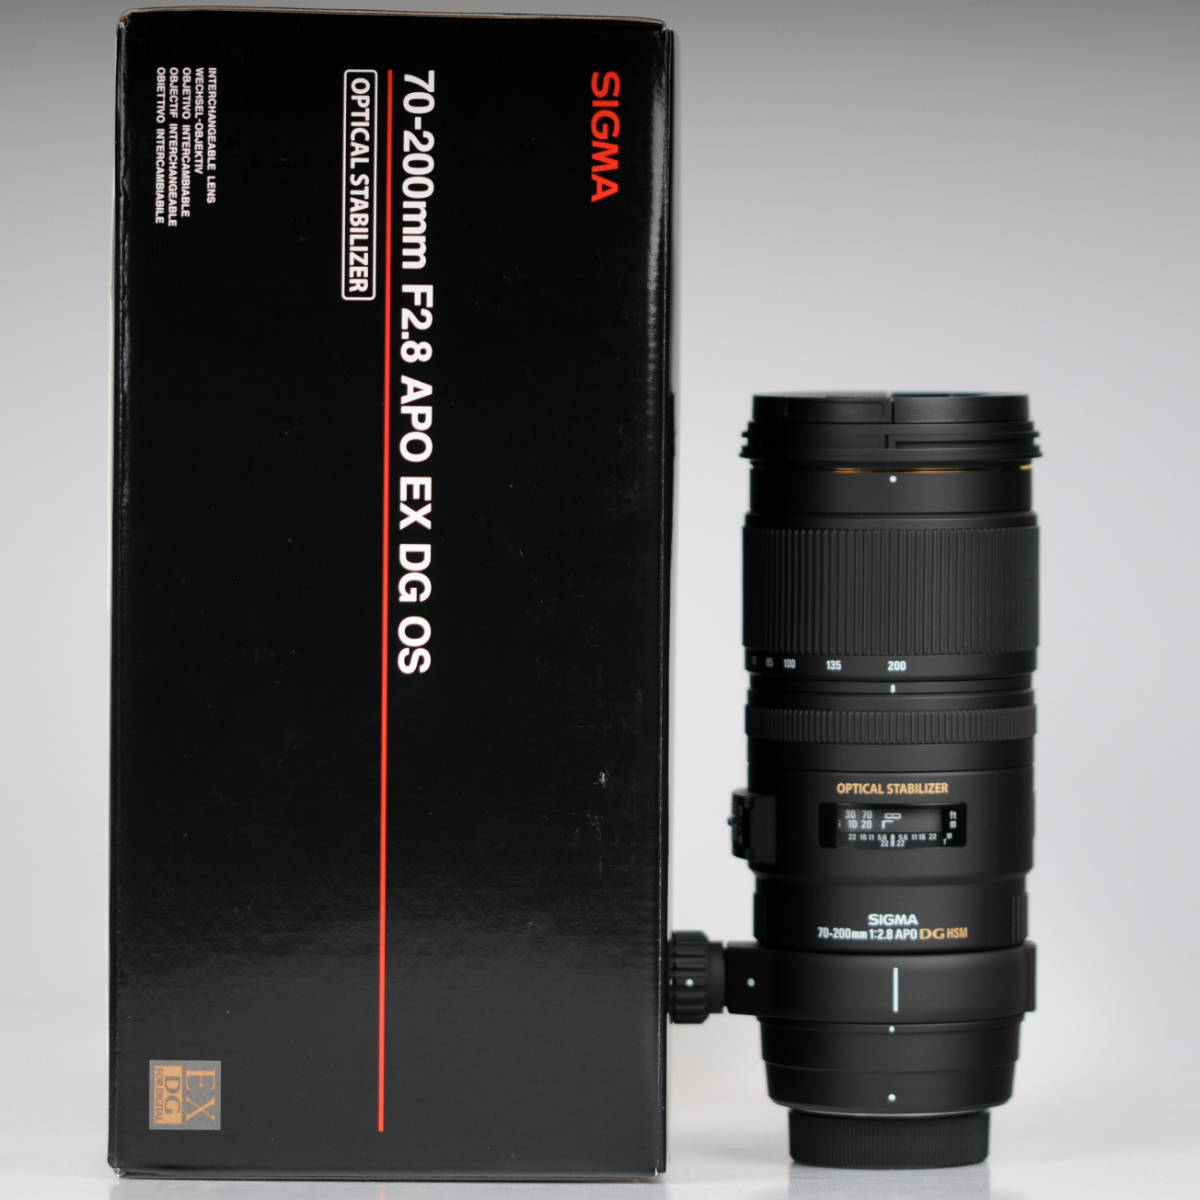 Image of Sigma APO 70-200mm f/2.8 EX DG OS HSM Lens For Nikon Mount